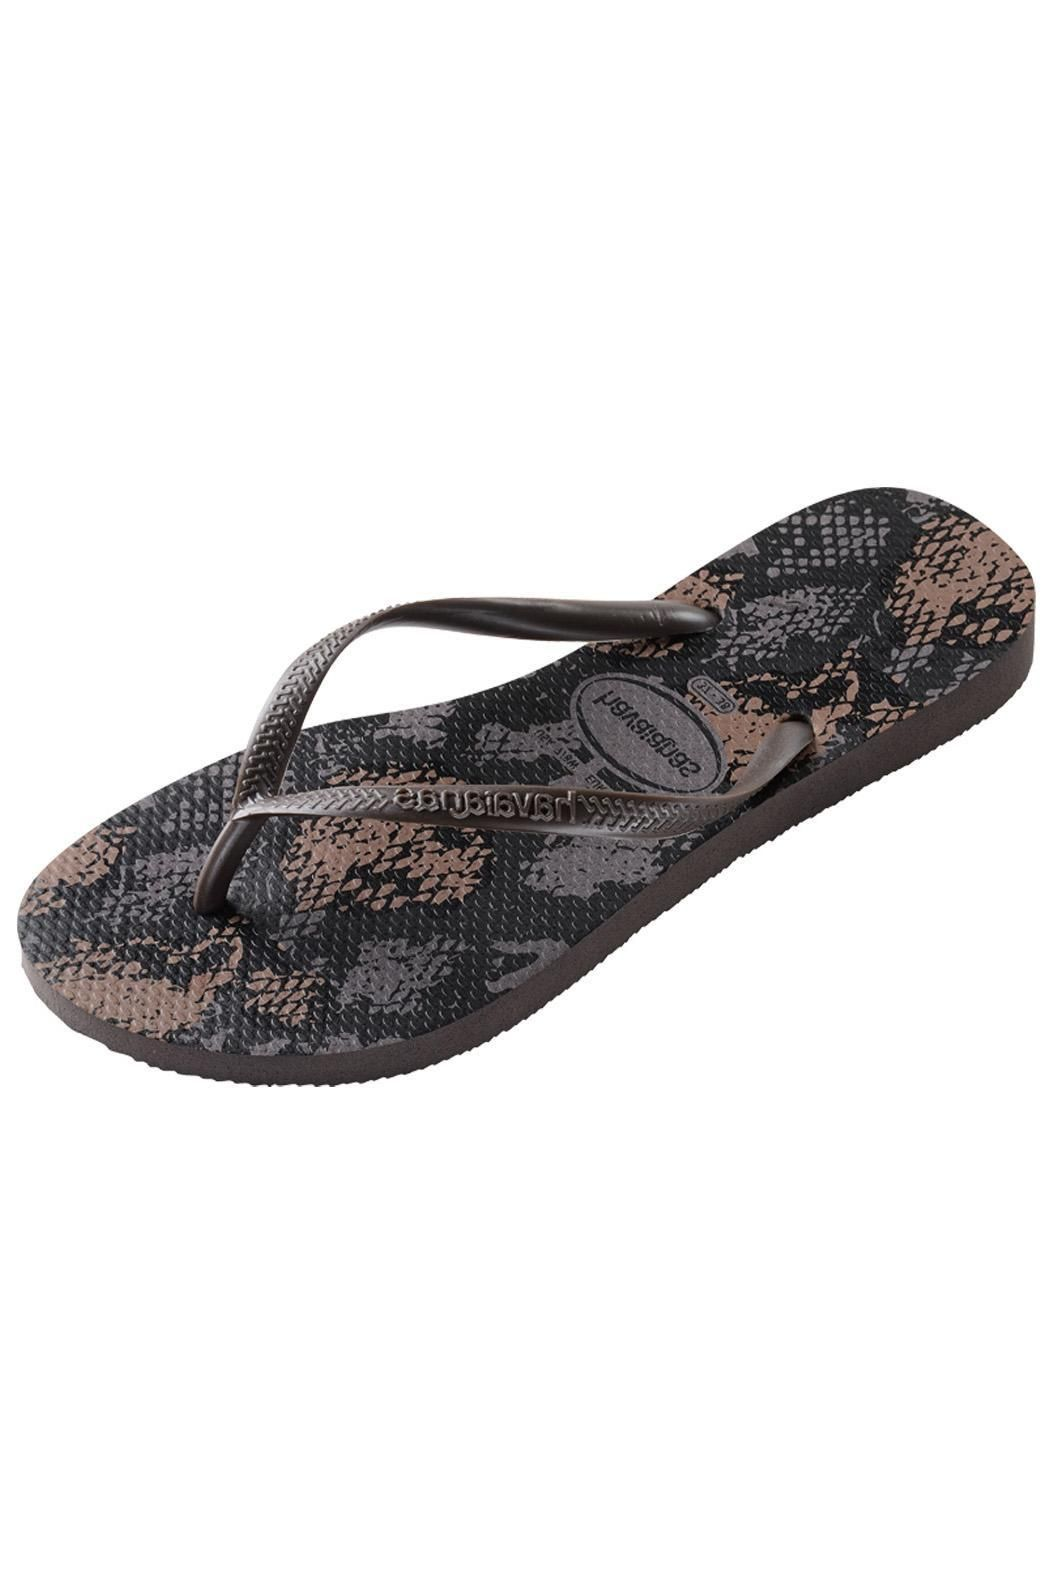 7a1c7ebda82a75 The Havaianas signature footbed is so comfortable you ll wear these all the  time! This color is called Fog. Brazil size conversion 35 36 ...